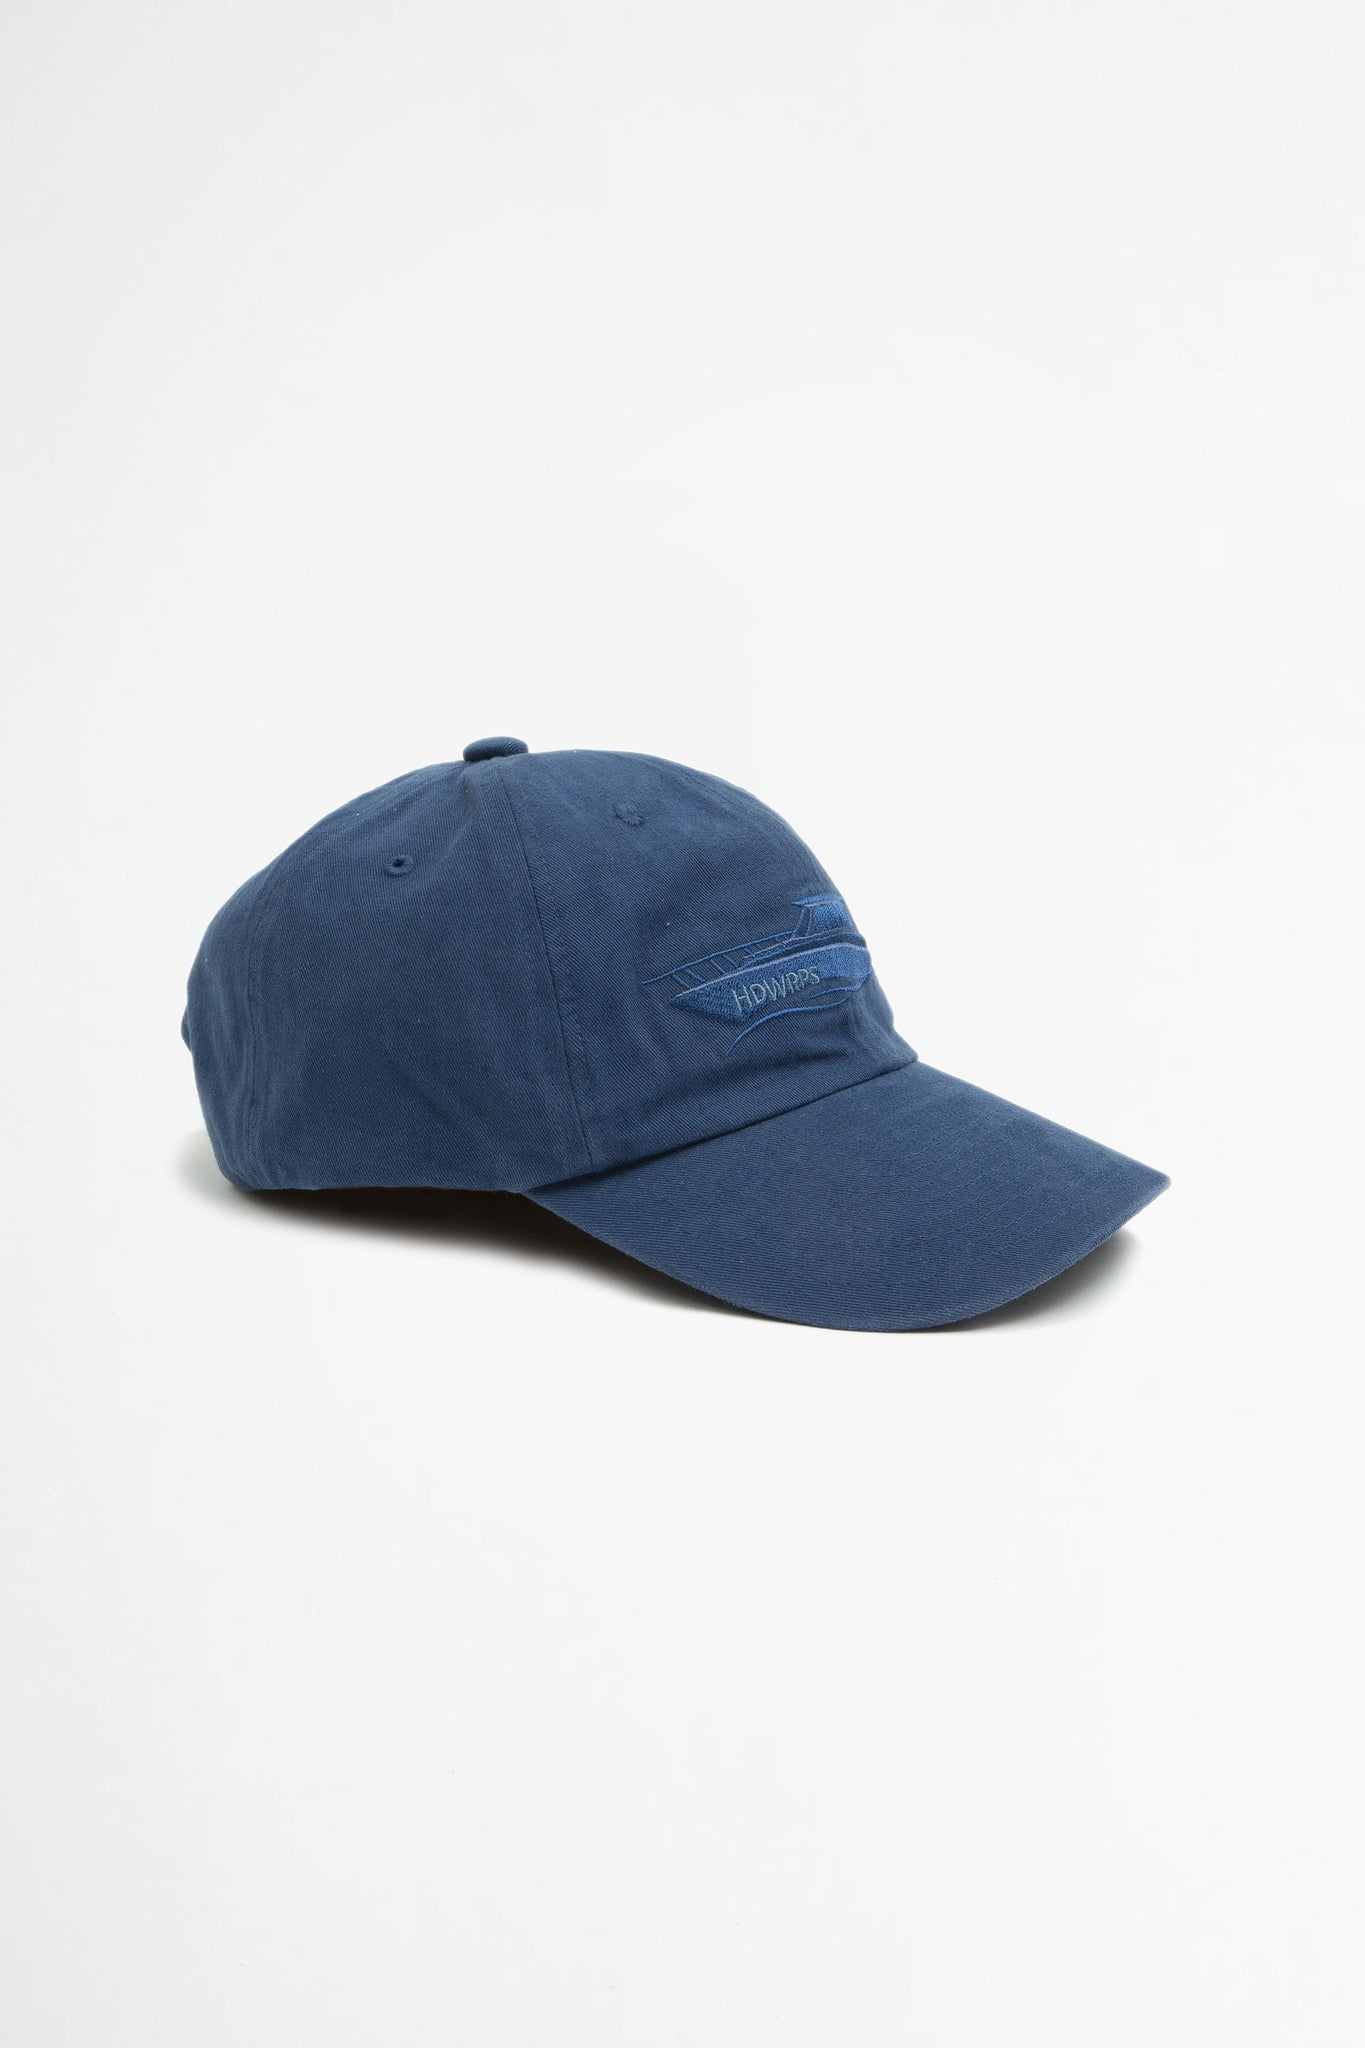 Boat six panel cap blue